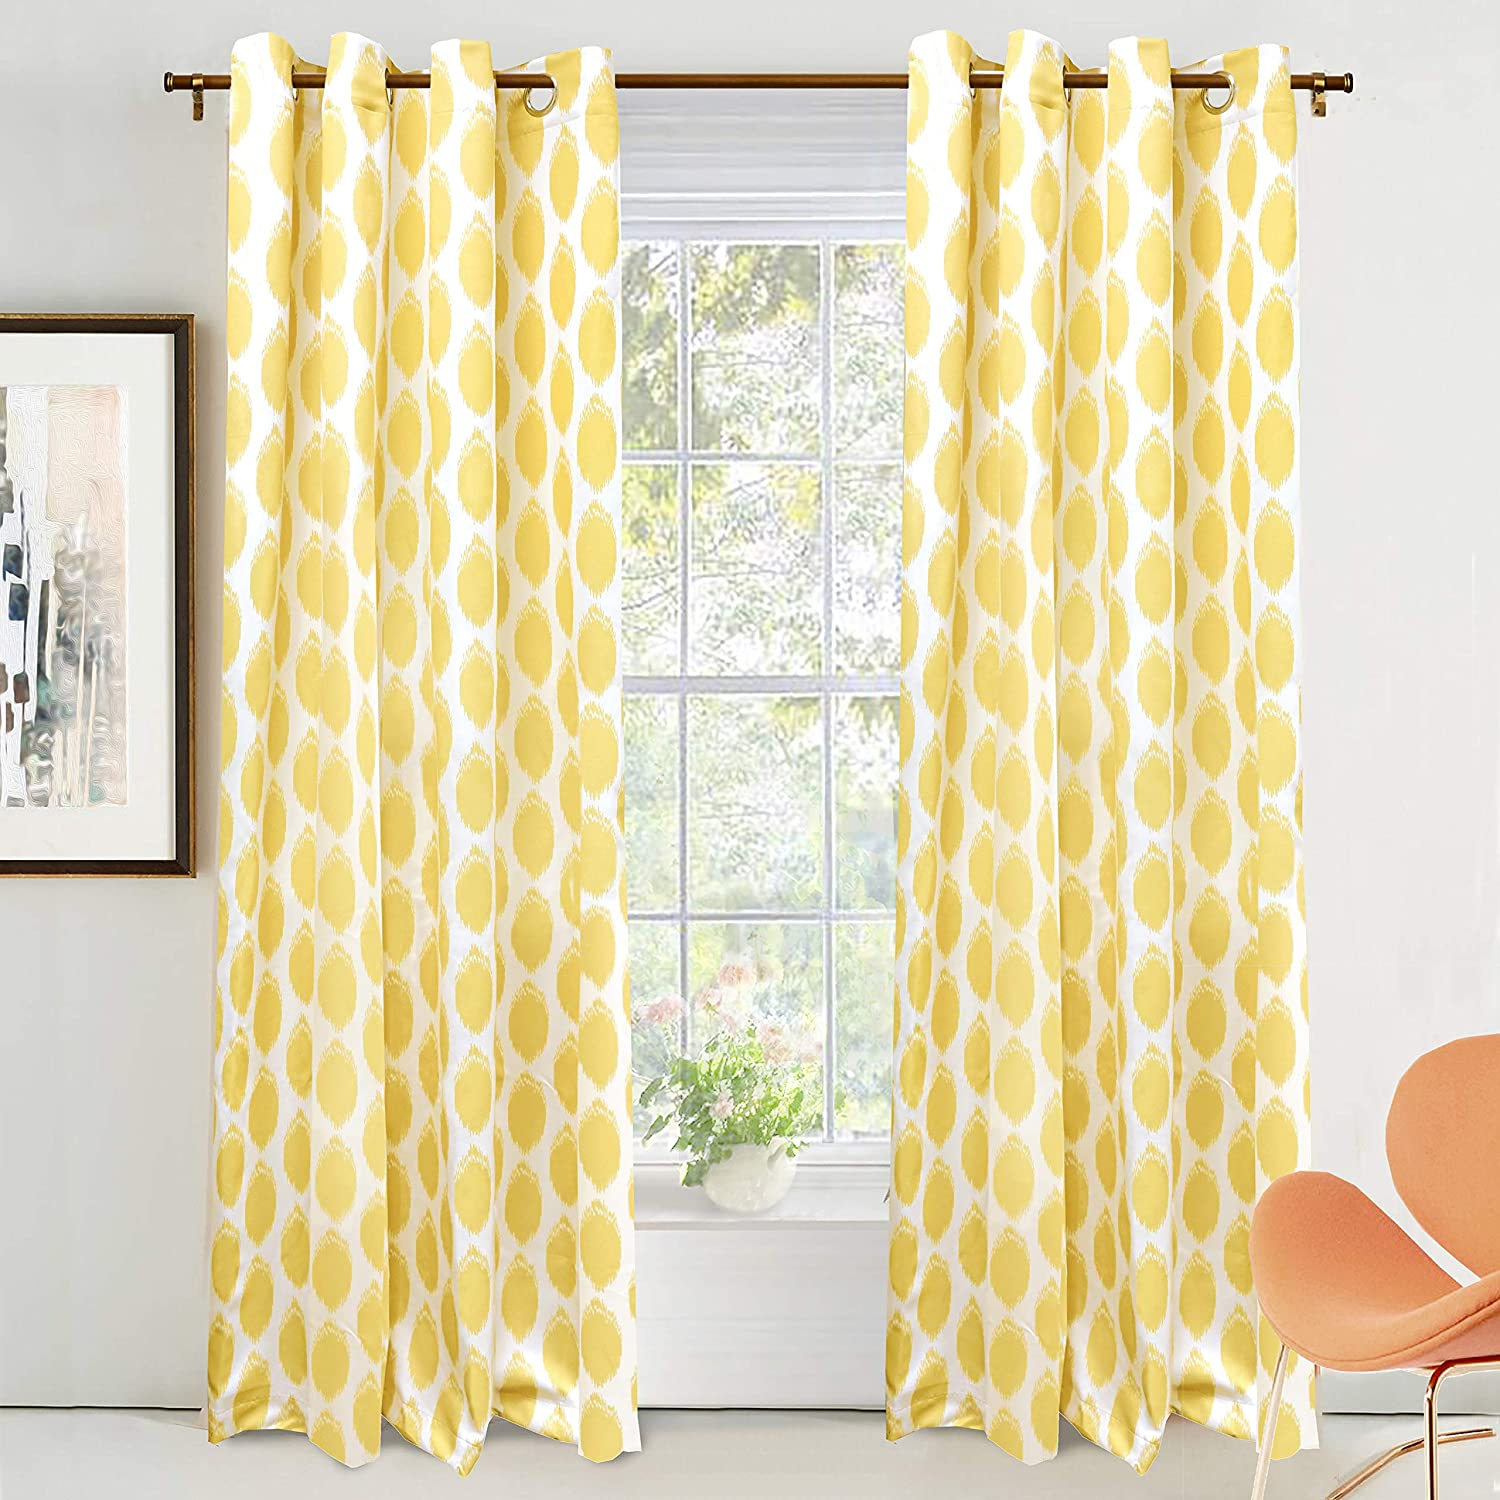 DriftAway Allen Trellis Room Darkening Thermal Insulated Grommet Unlined Window Curtains Set of 2 Panels Yellow 52 Inch by 84 Inch